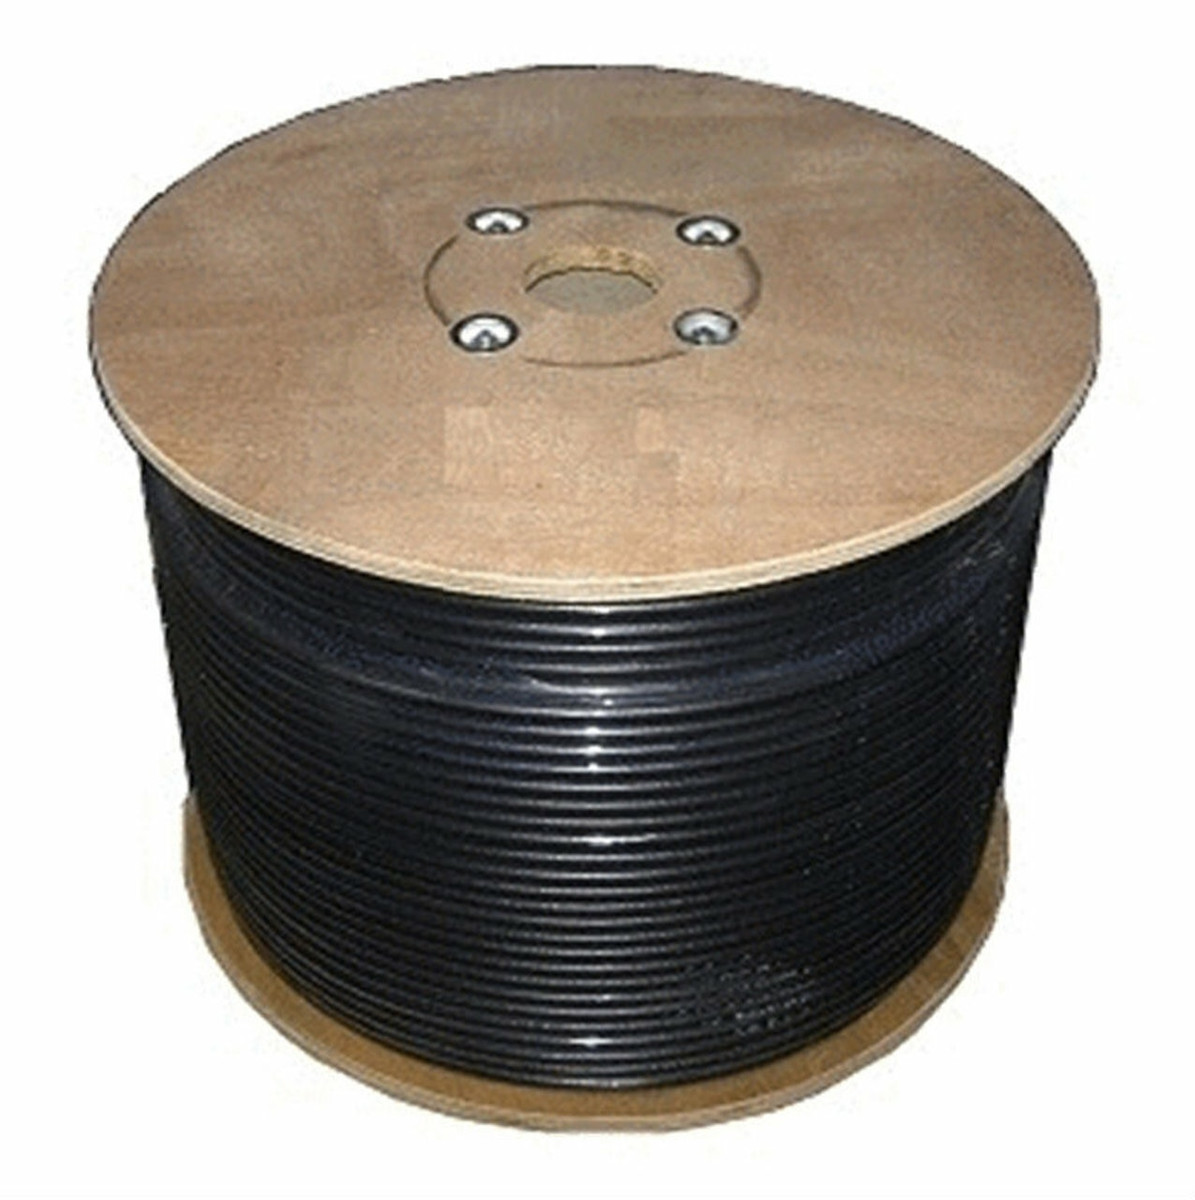 Bolton Technical Bolton400 Ultra Low-Loss Cable (LMR 400spec)   Priced Per Foot